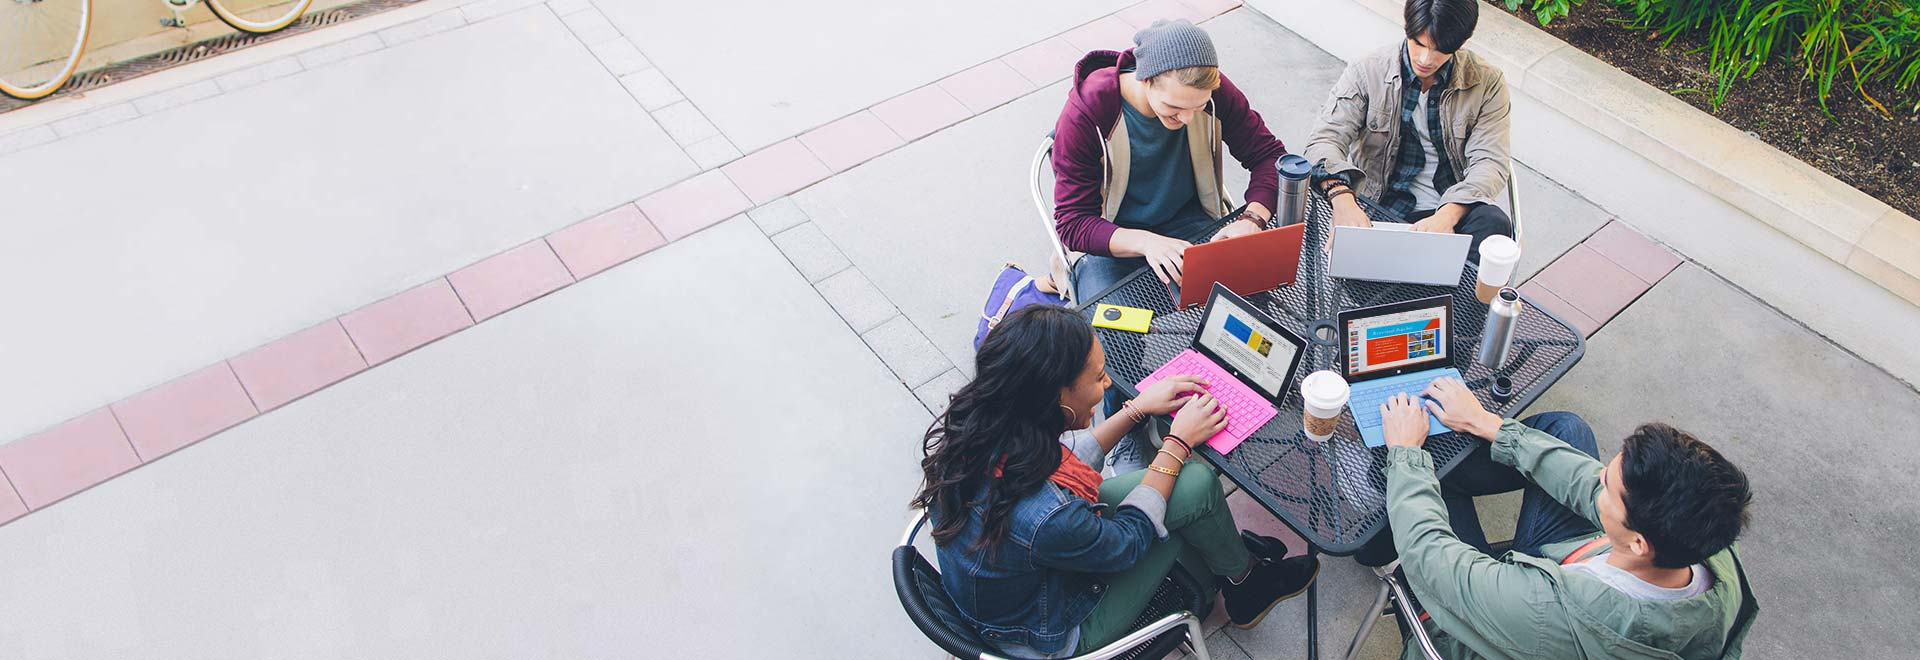 Four students sitting at a table outside, using Office 365 for Education on tablets.